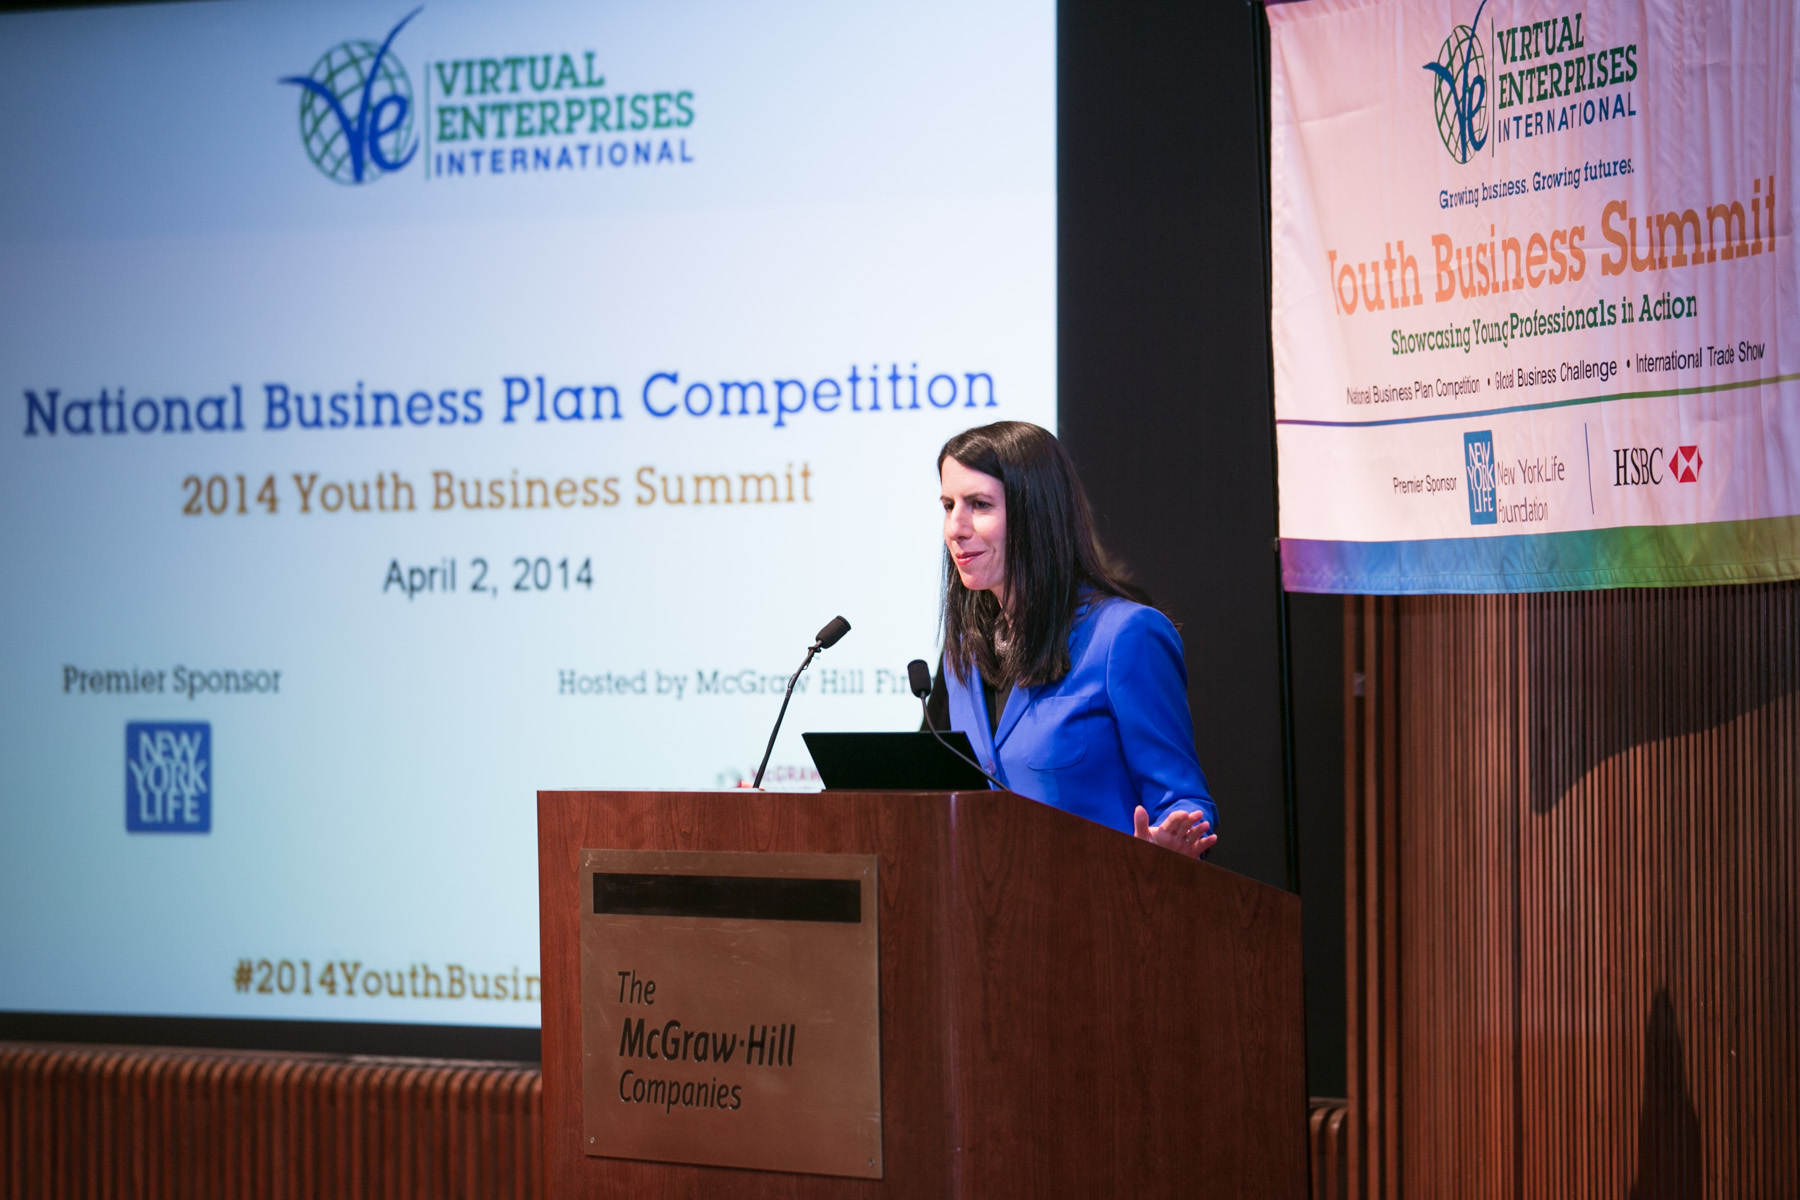 2014 Business Plan Competition: Who's the Winner?